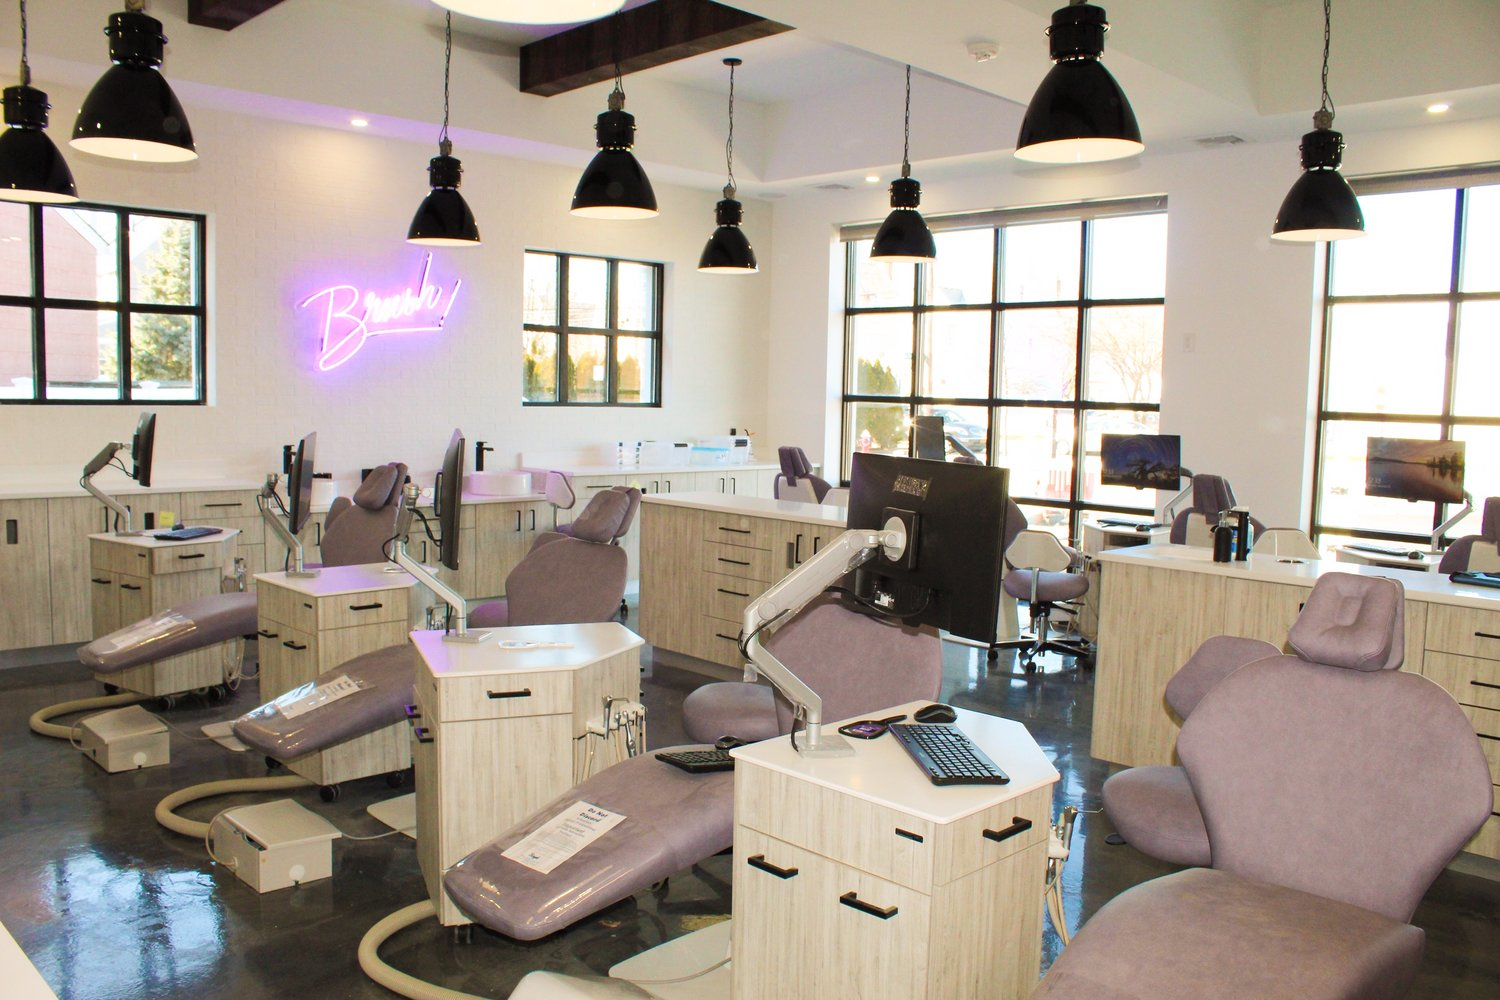 On Rockaway Avenue, above, Sipkin Orthodontics is opening its second location. Dr. Jennifer Sipkin said she expects the office to be up and running next week.